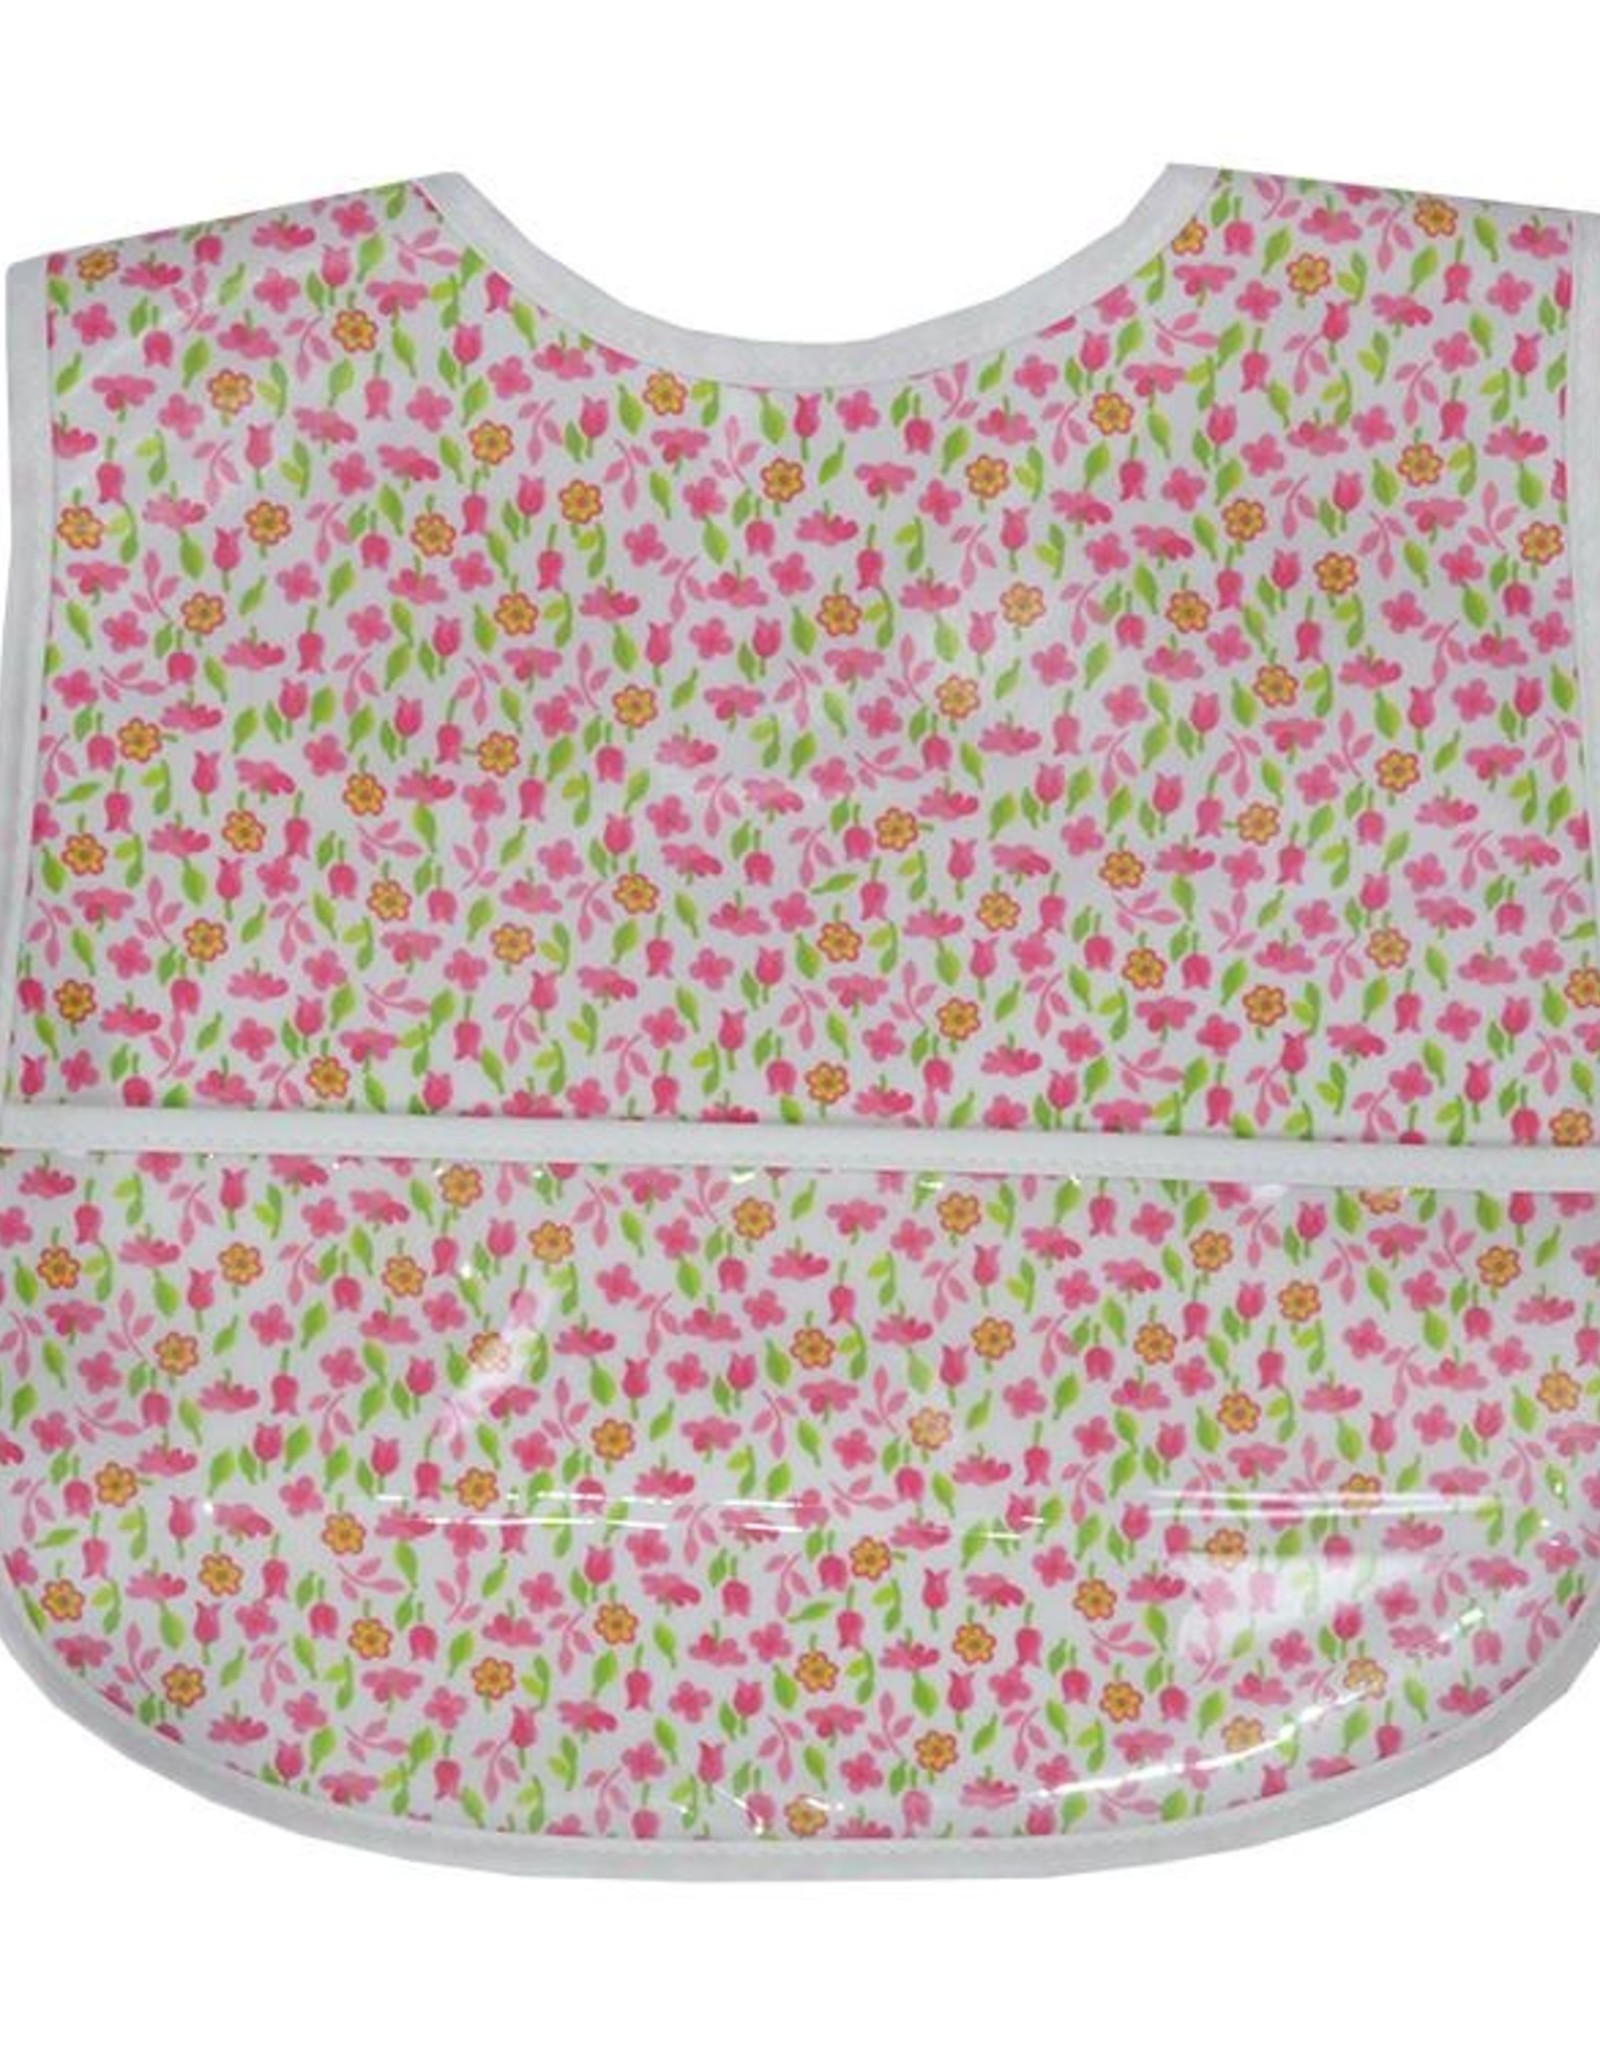 3 Marthas FRESH FLOWERS LAMINATED BIB